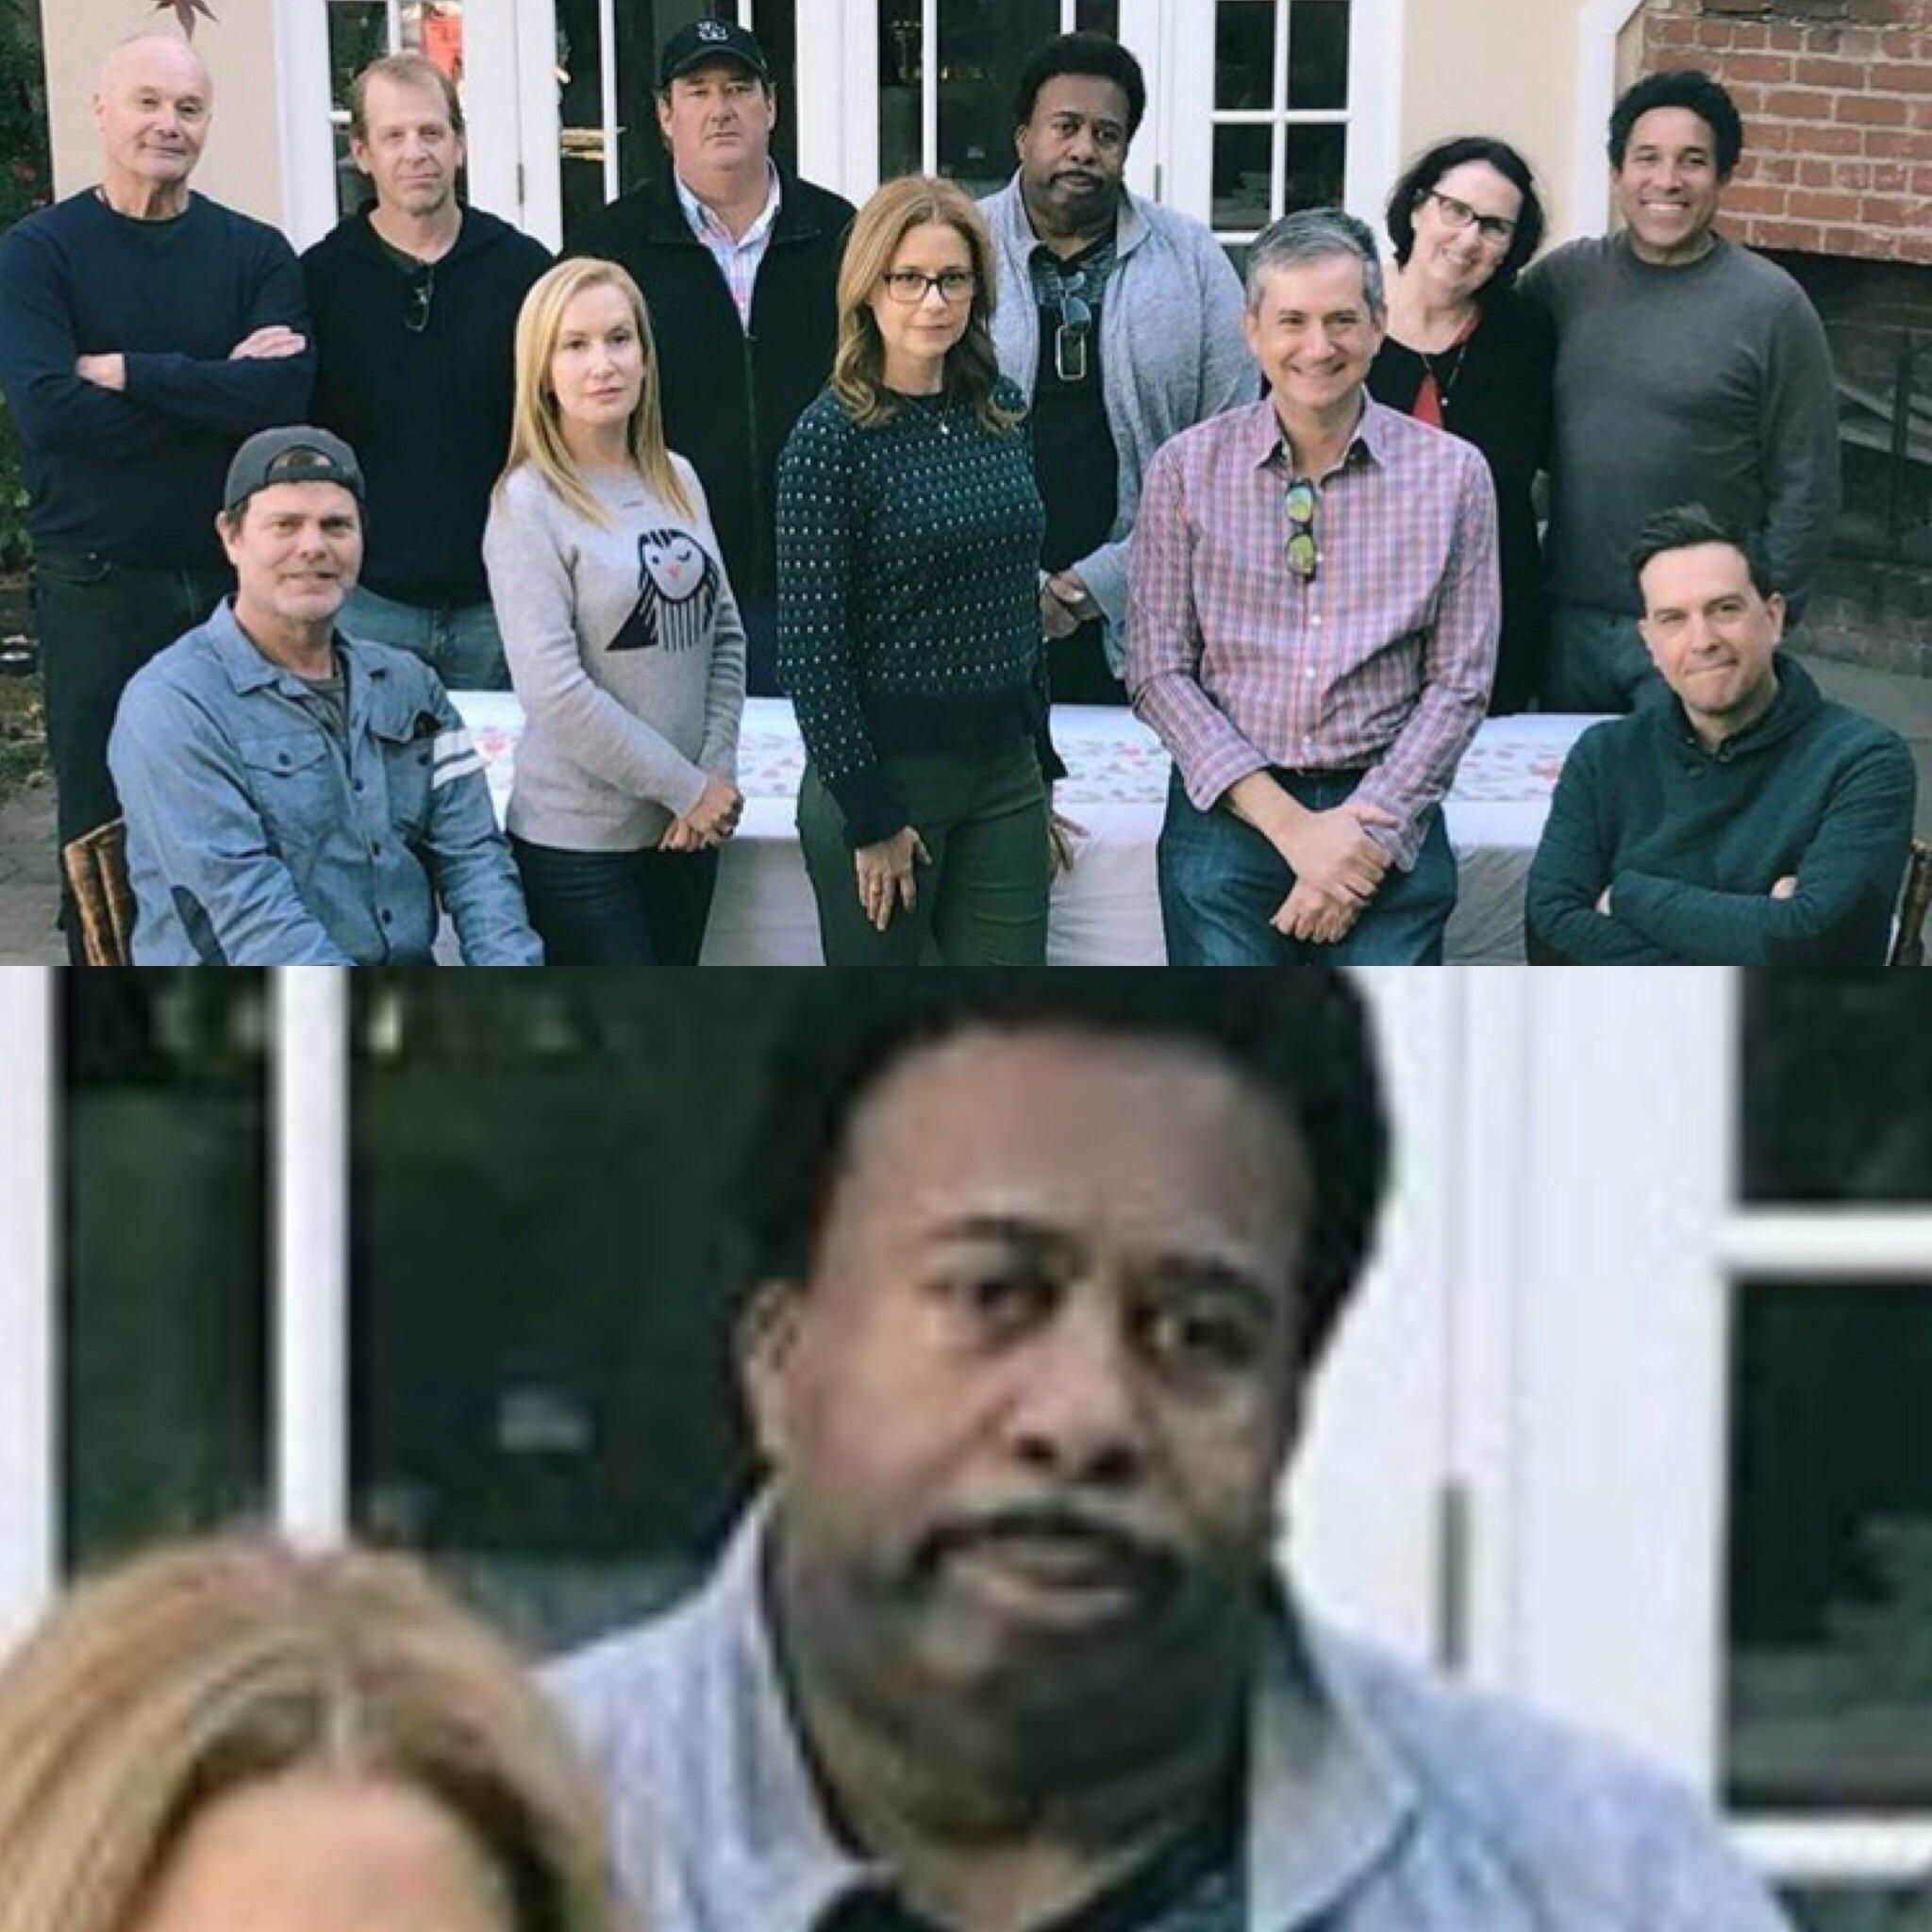 When they told you the reunion wasn't on pretzel day.....